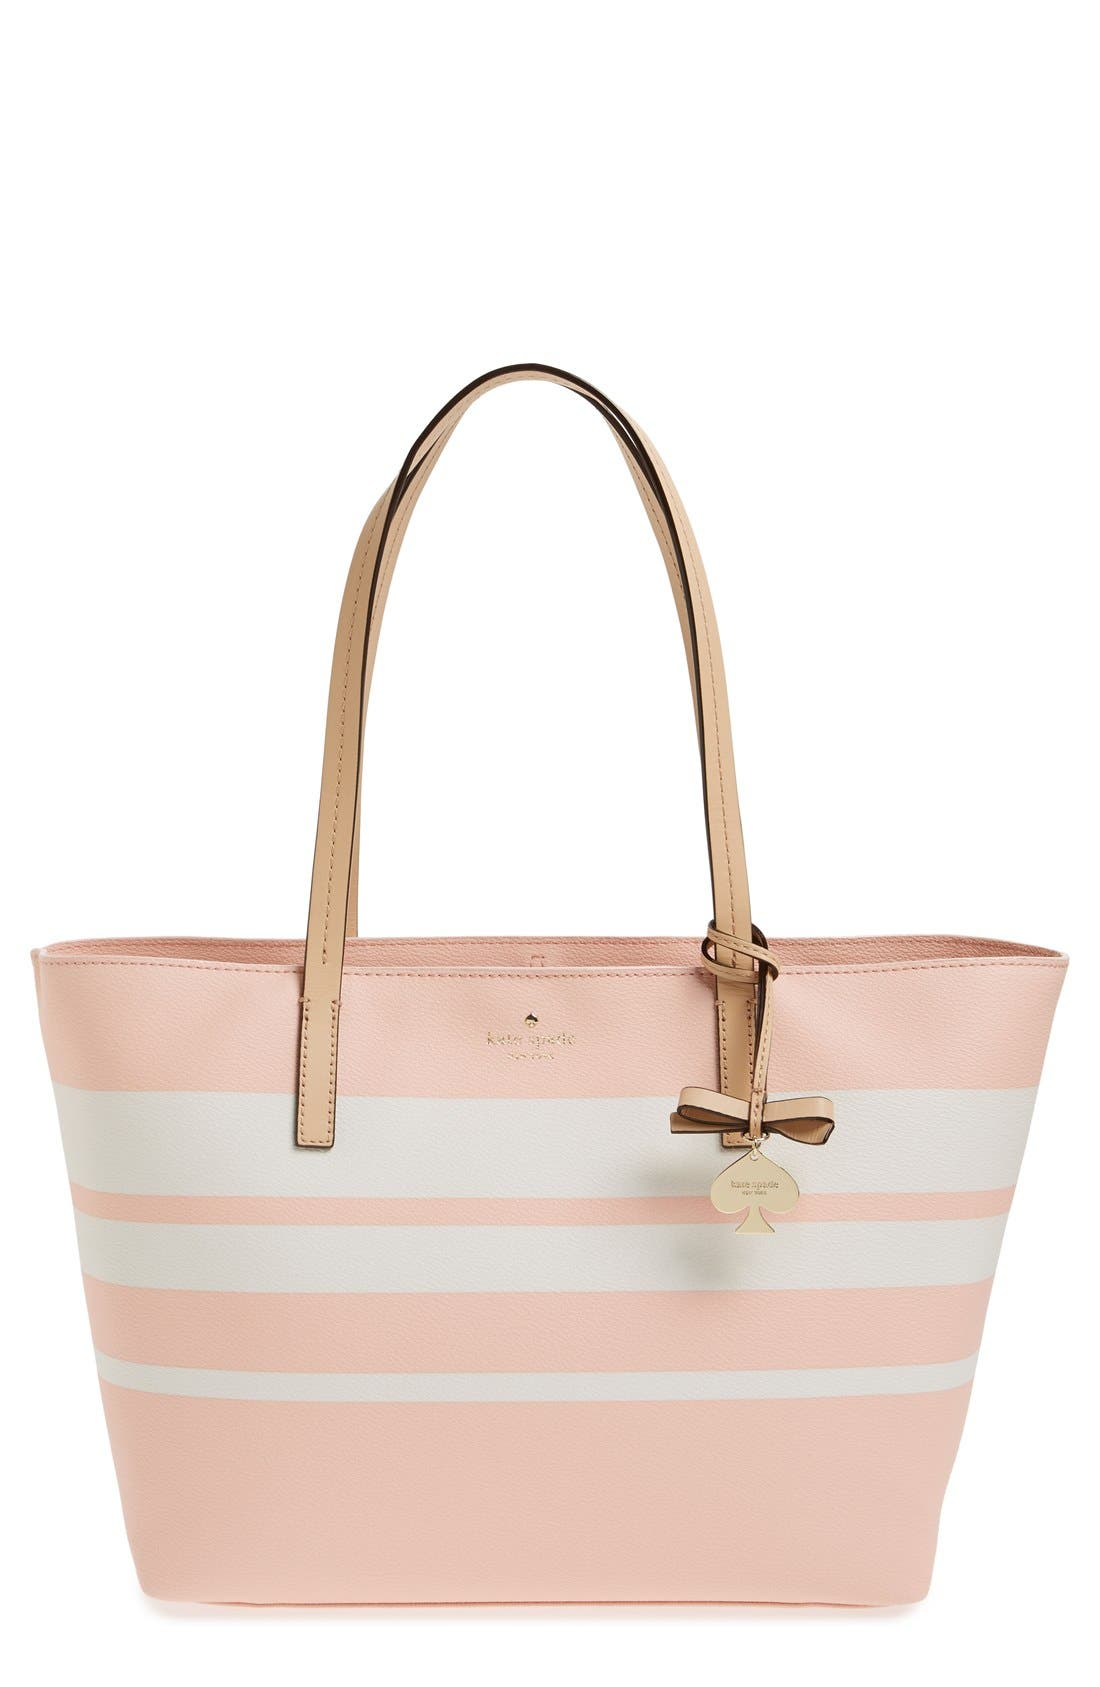 Main Image - kate spade new york 'hawthorne lane - ryan' tote (Nordstrom Exclusive)